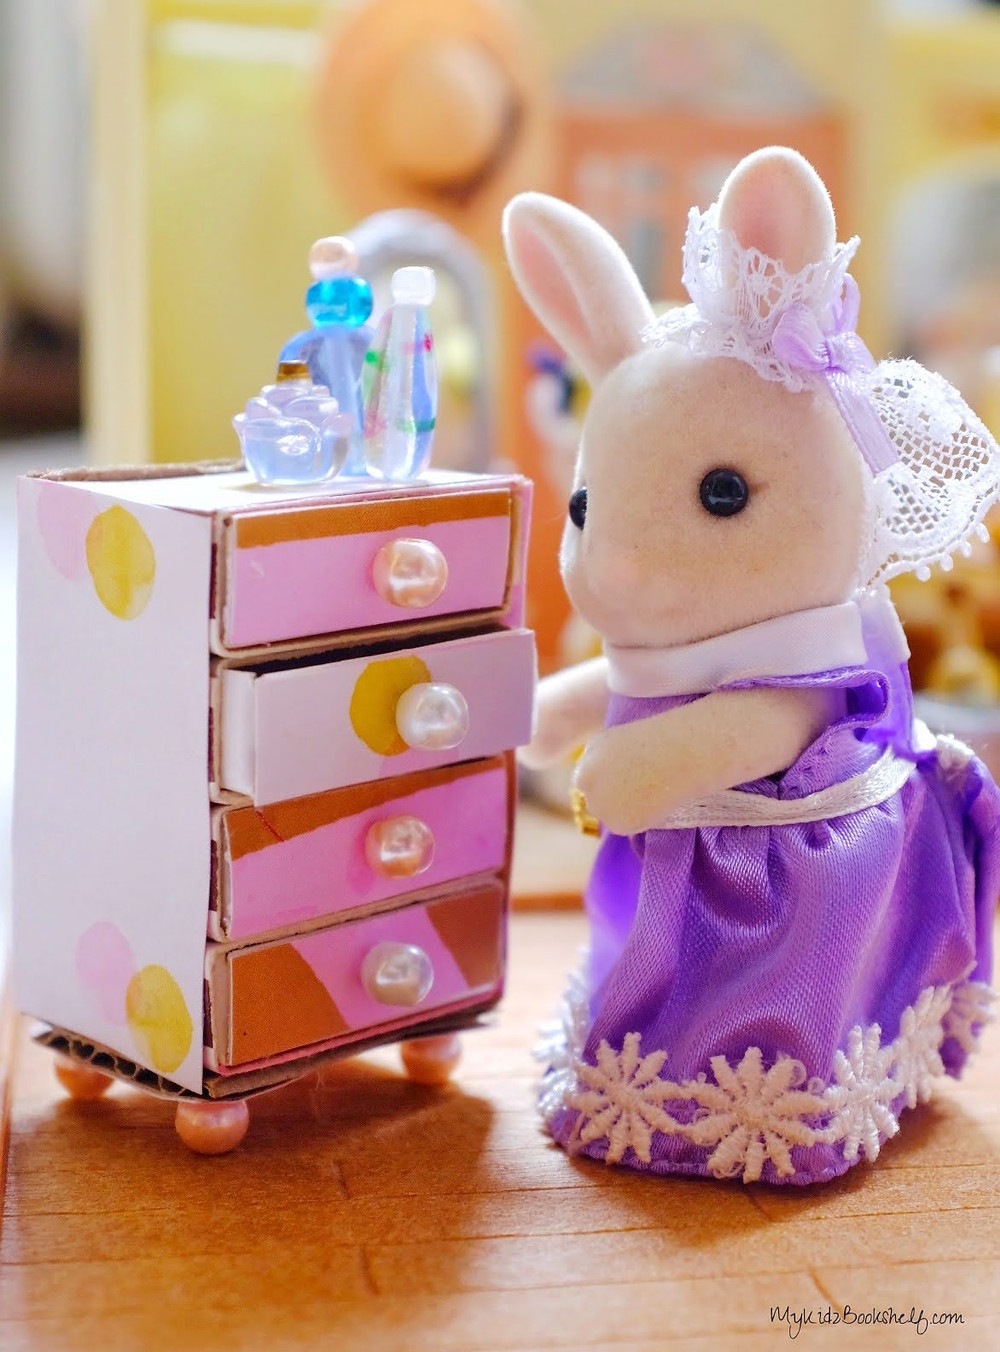 DIY Make Your Own Mini Matchbox Dresser Mykidzbookshelf.com with Sylvanian family bunny